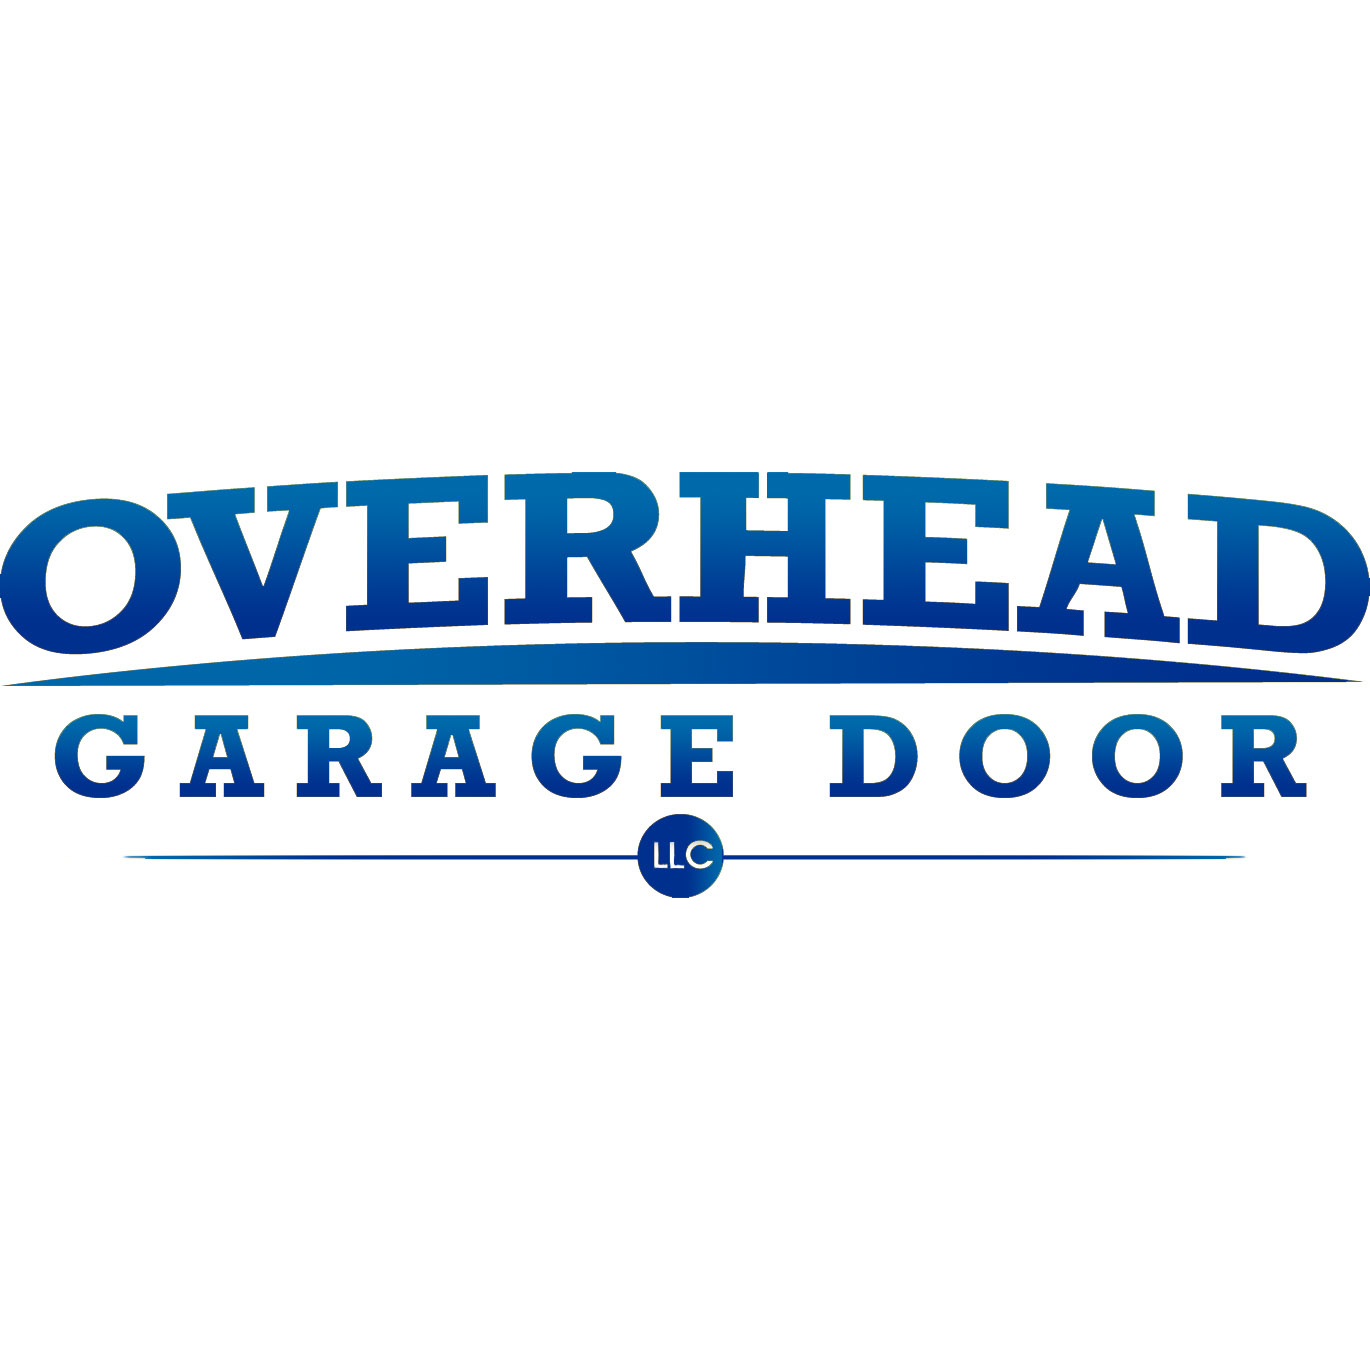 Overhead Garage Doors LLC - Fort Worth, TX 76107 - (817)713-5519 | ShowMeLocal.com